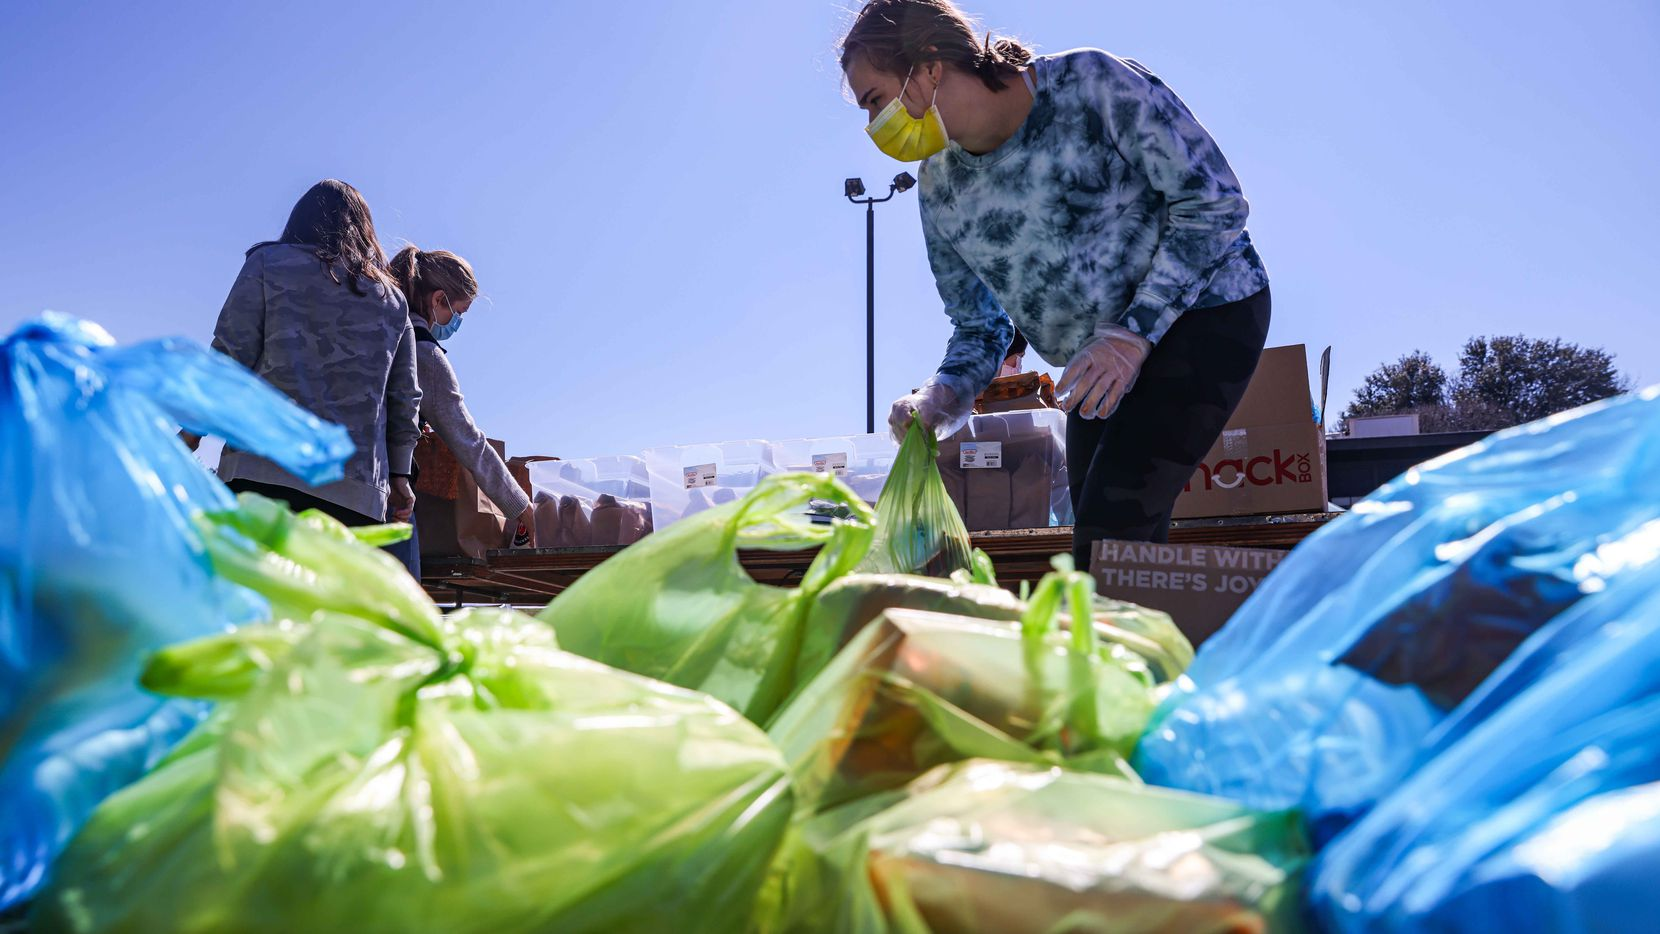 Volunteers distribute food aid to the community at Ledbetter food pantry in Iglesia El Calvario as temperatures start to rise and the snow accumulated after the passage of snowstorm Uri begins to melt in Dallas on Friday, February 19, 2021.